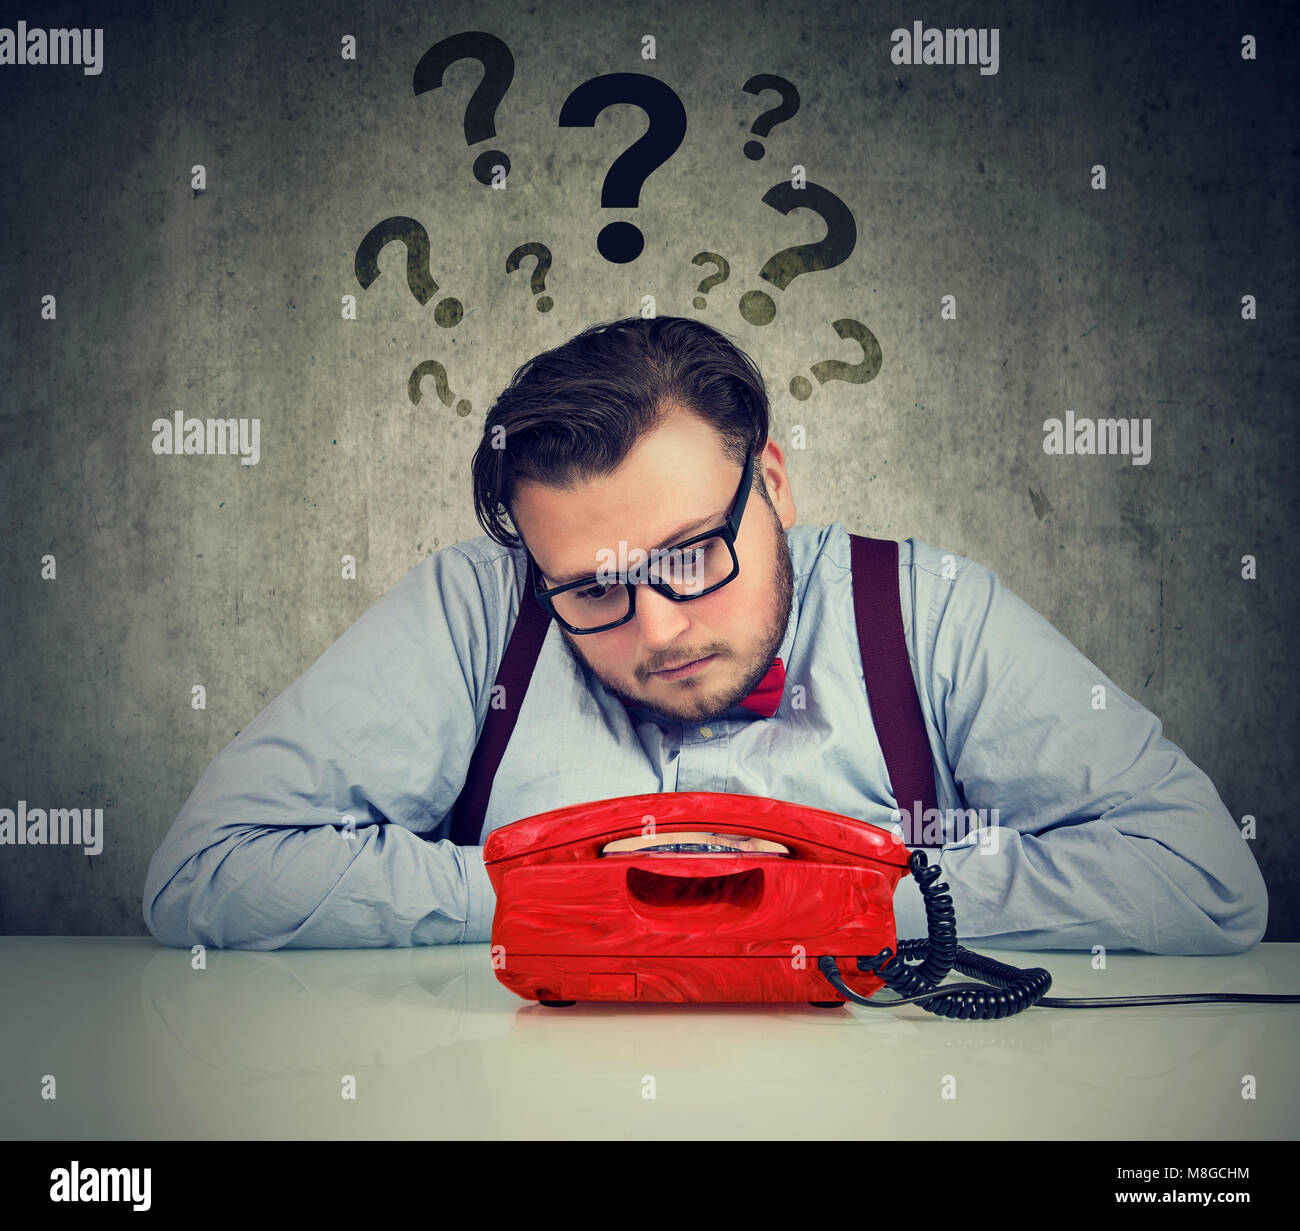 Sad man with too many questions waiting for a call - Stock Image